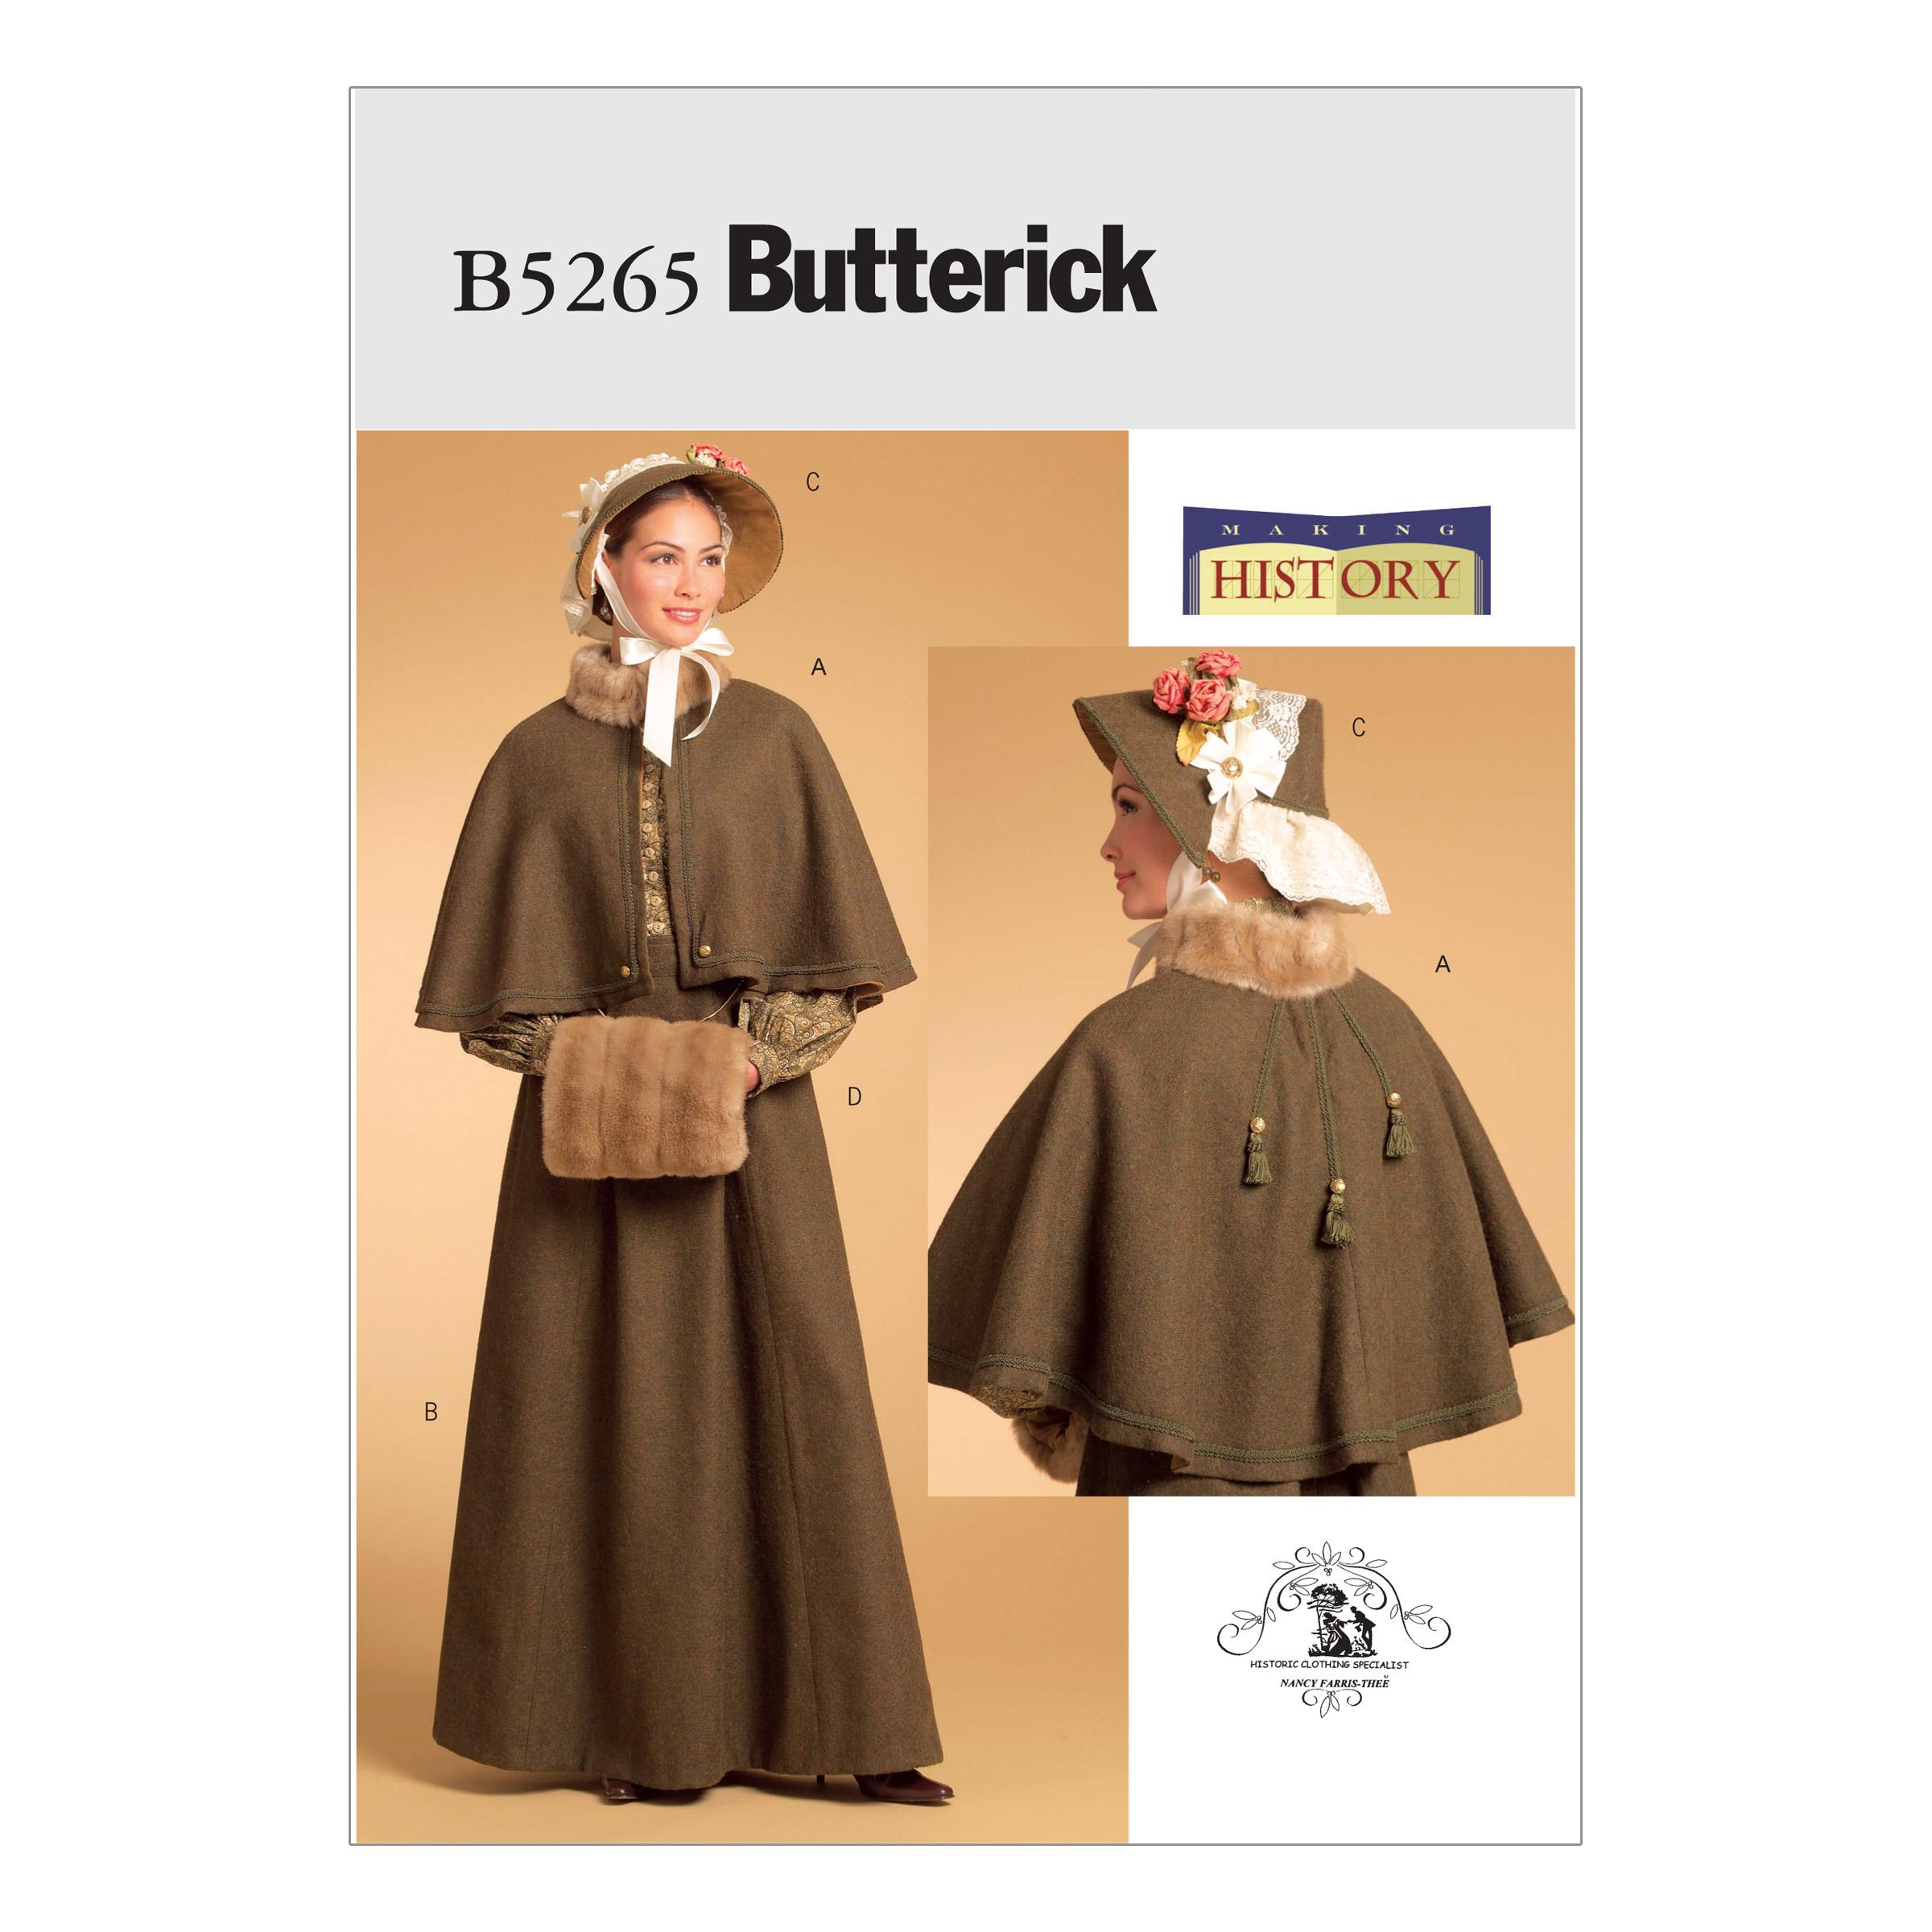 Butterick B5265 Misses' Historical Costume